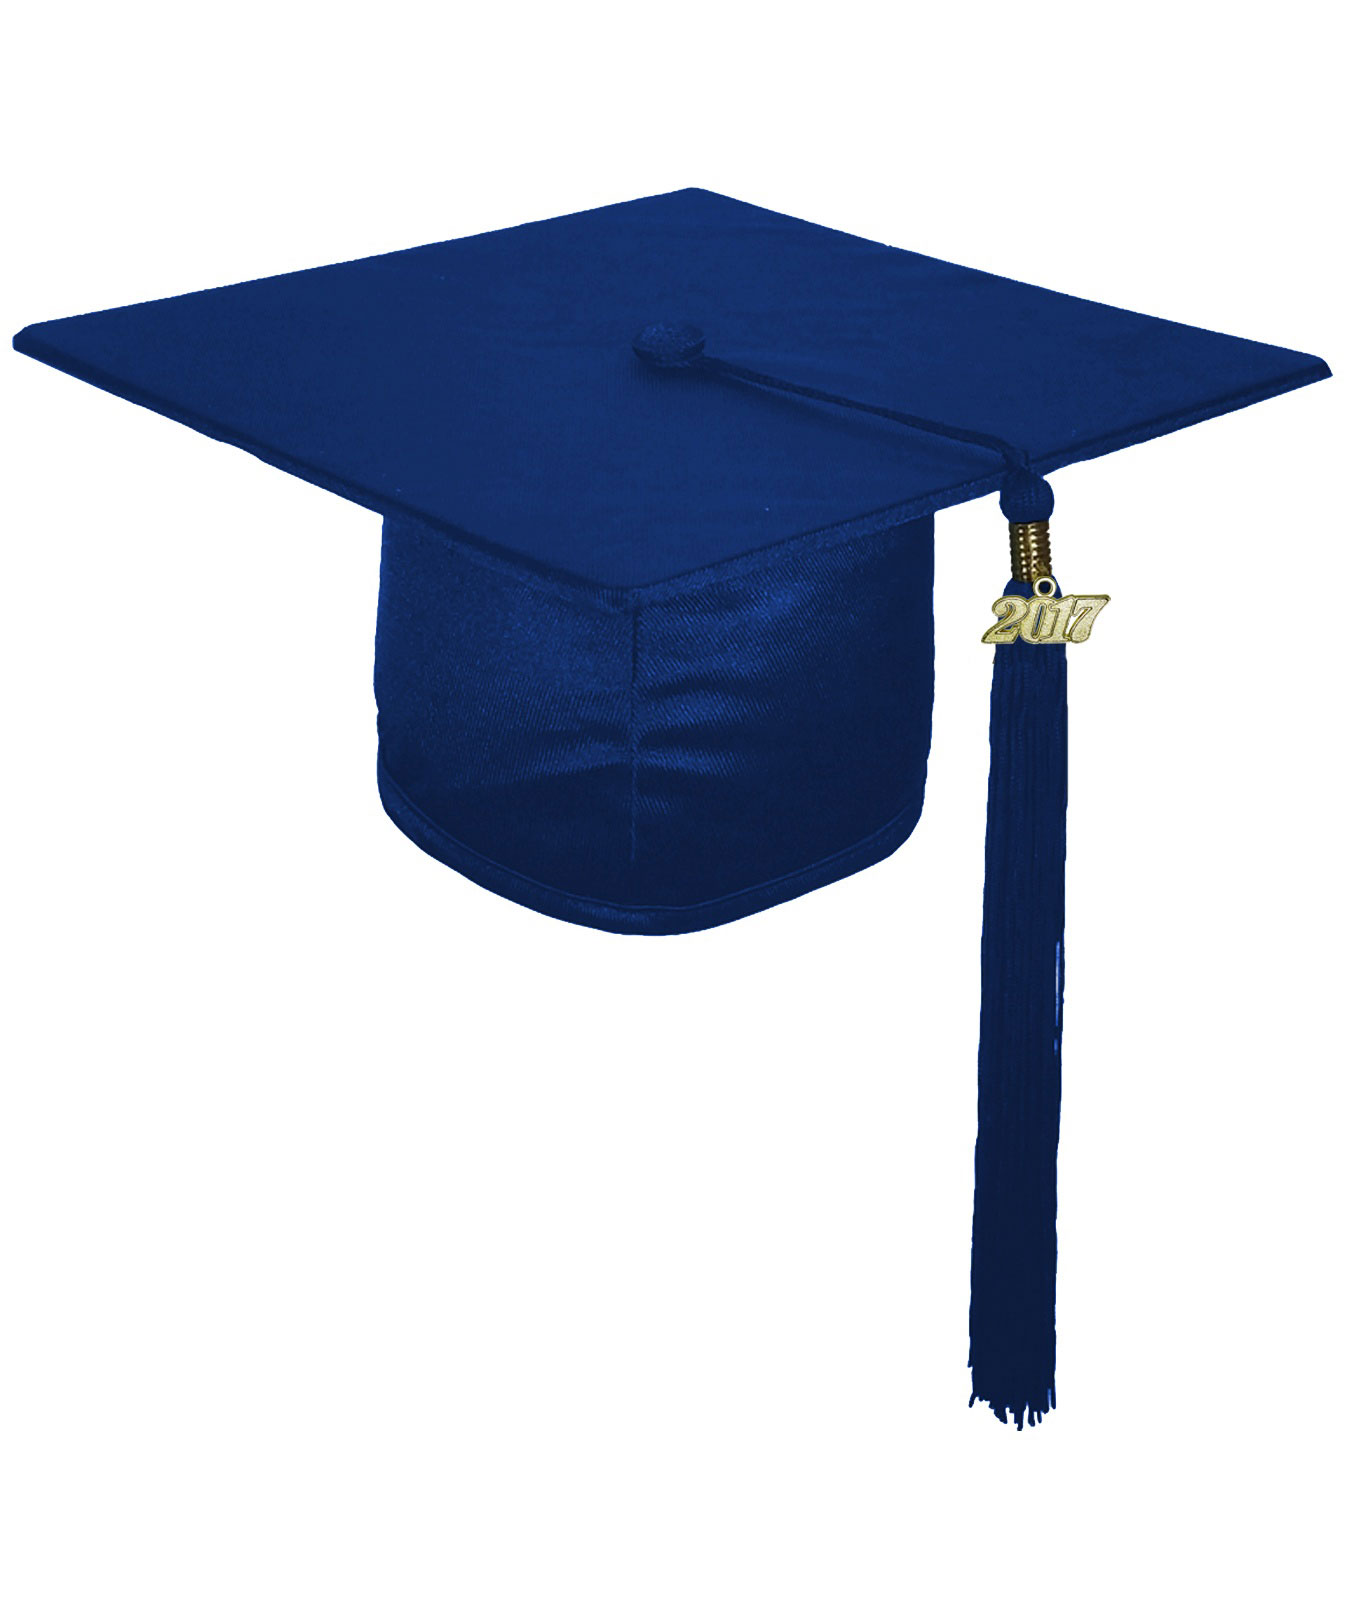 SHINY NAVY BLUE CAP, GOWN, GRADUATION BEAR SET-rs4251465613120